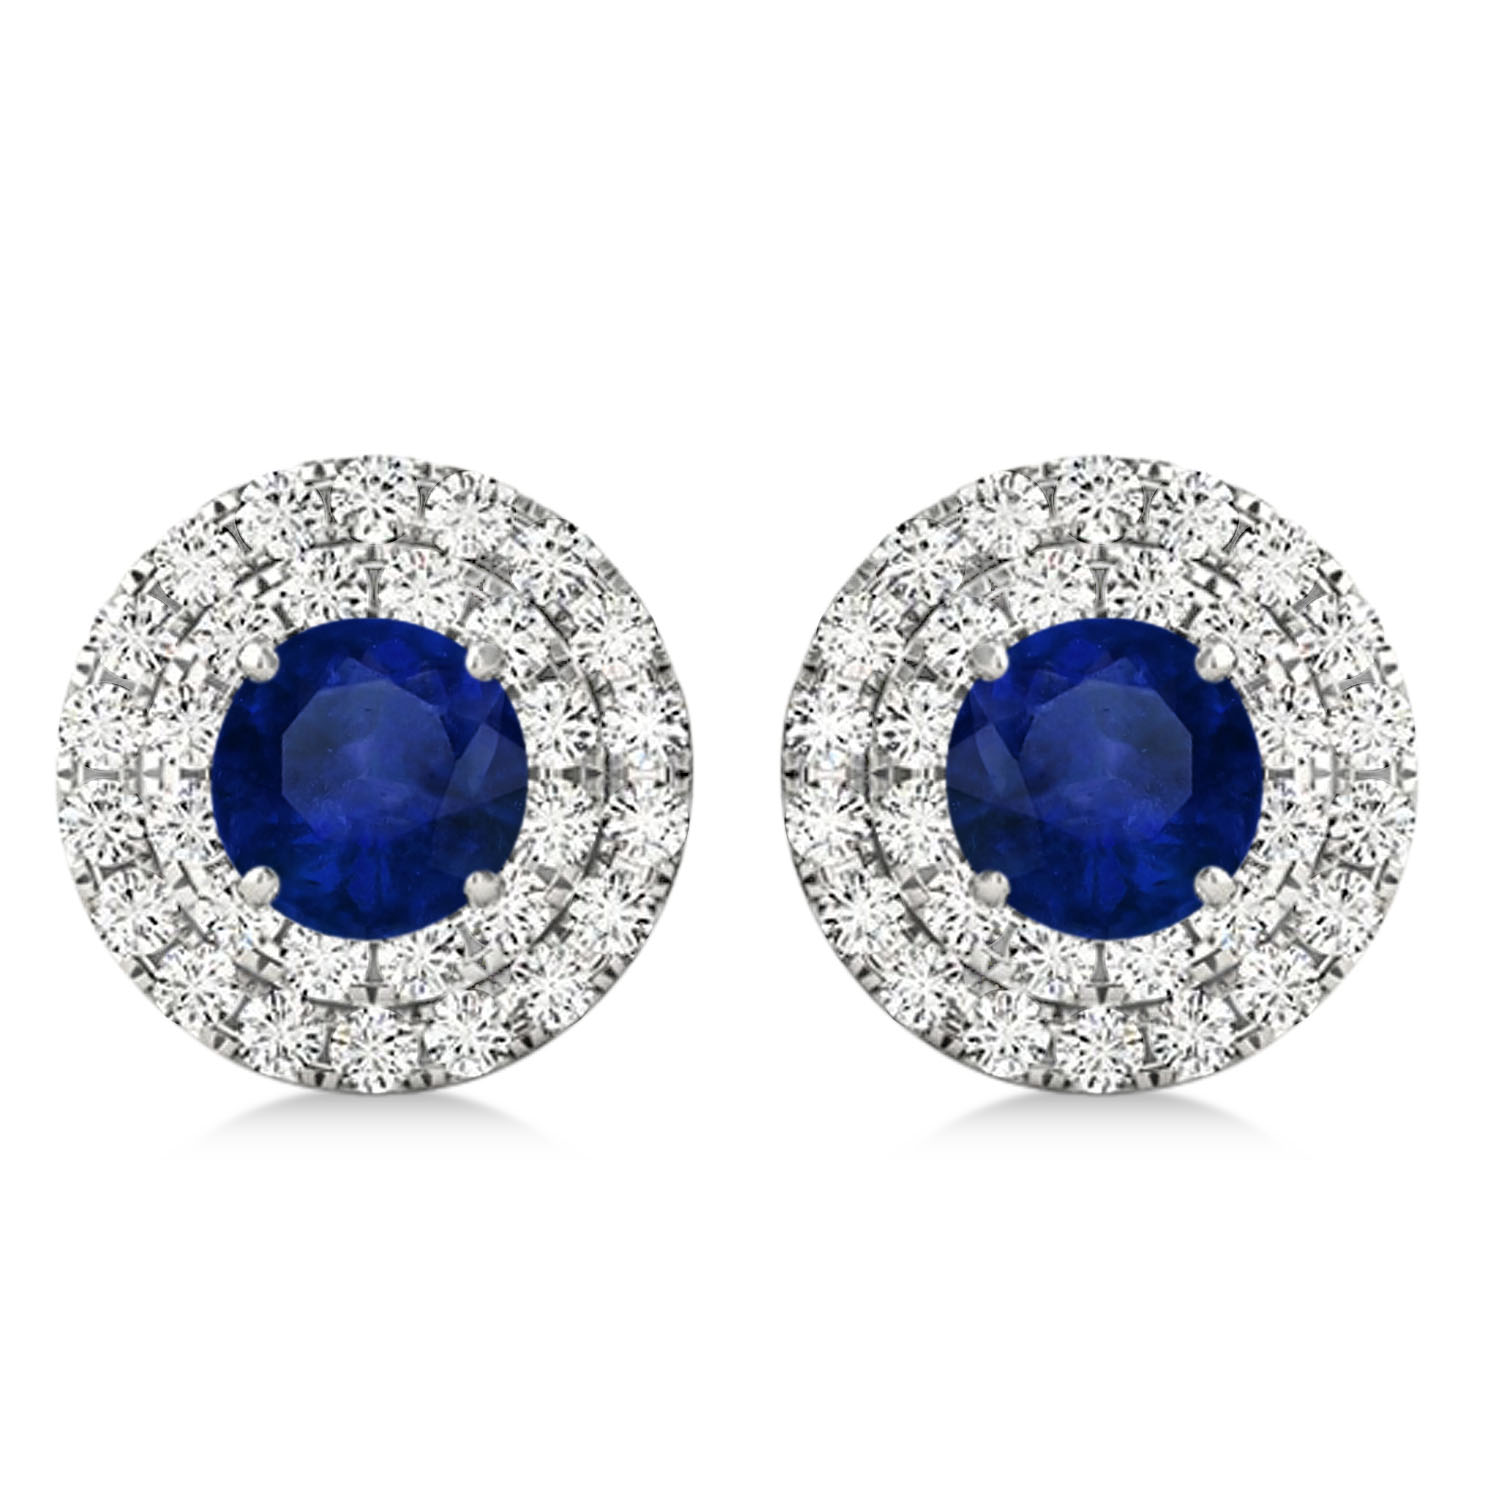 Round Double Halo Diamond & Blue Sapphire Earrings 14k White Gold 1.65ct